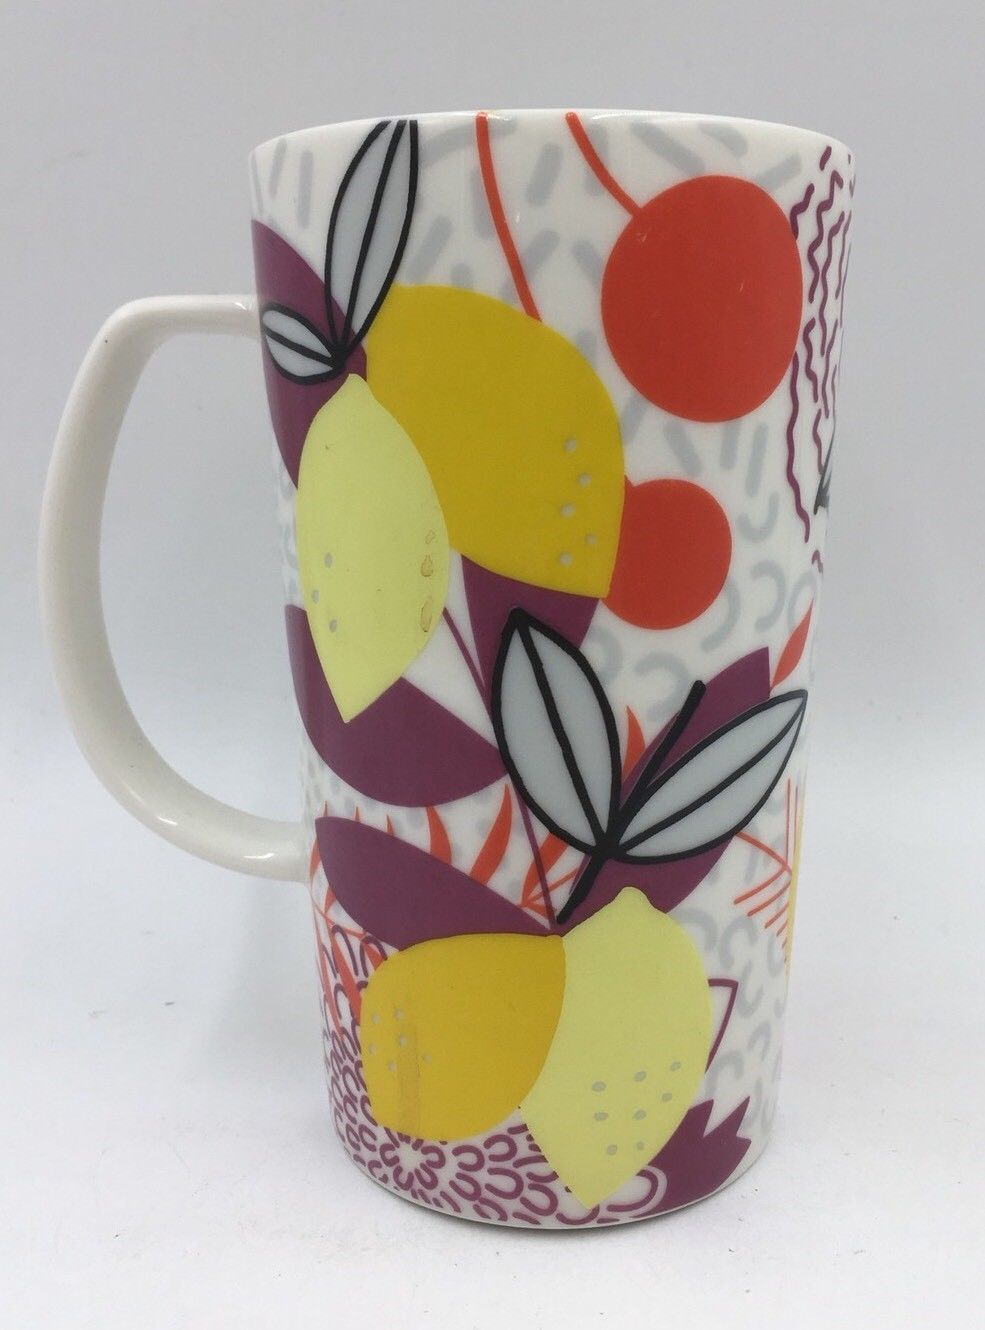 STARBUCKS COFFEE Mug Cup 2015 Engraved, Floral and Graphic Designs 16oz